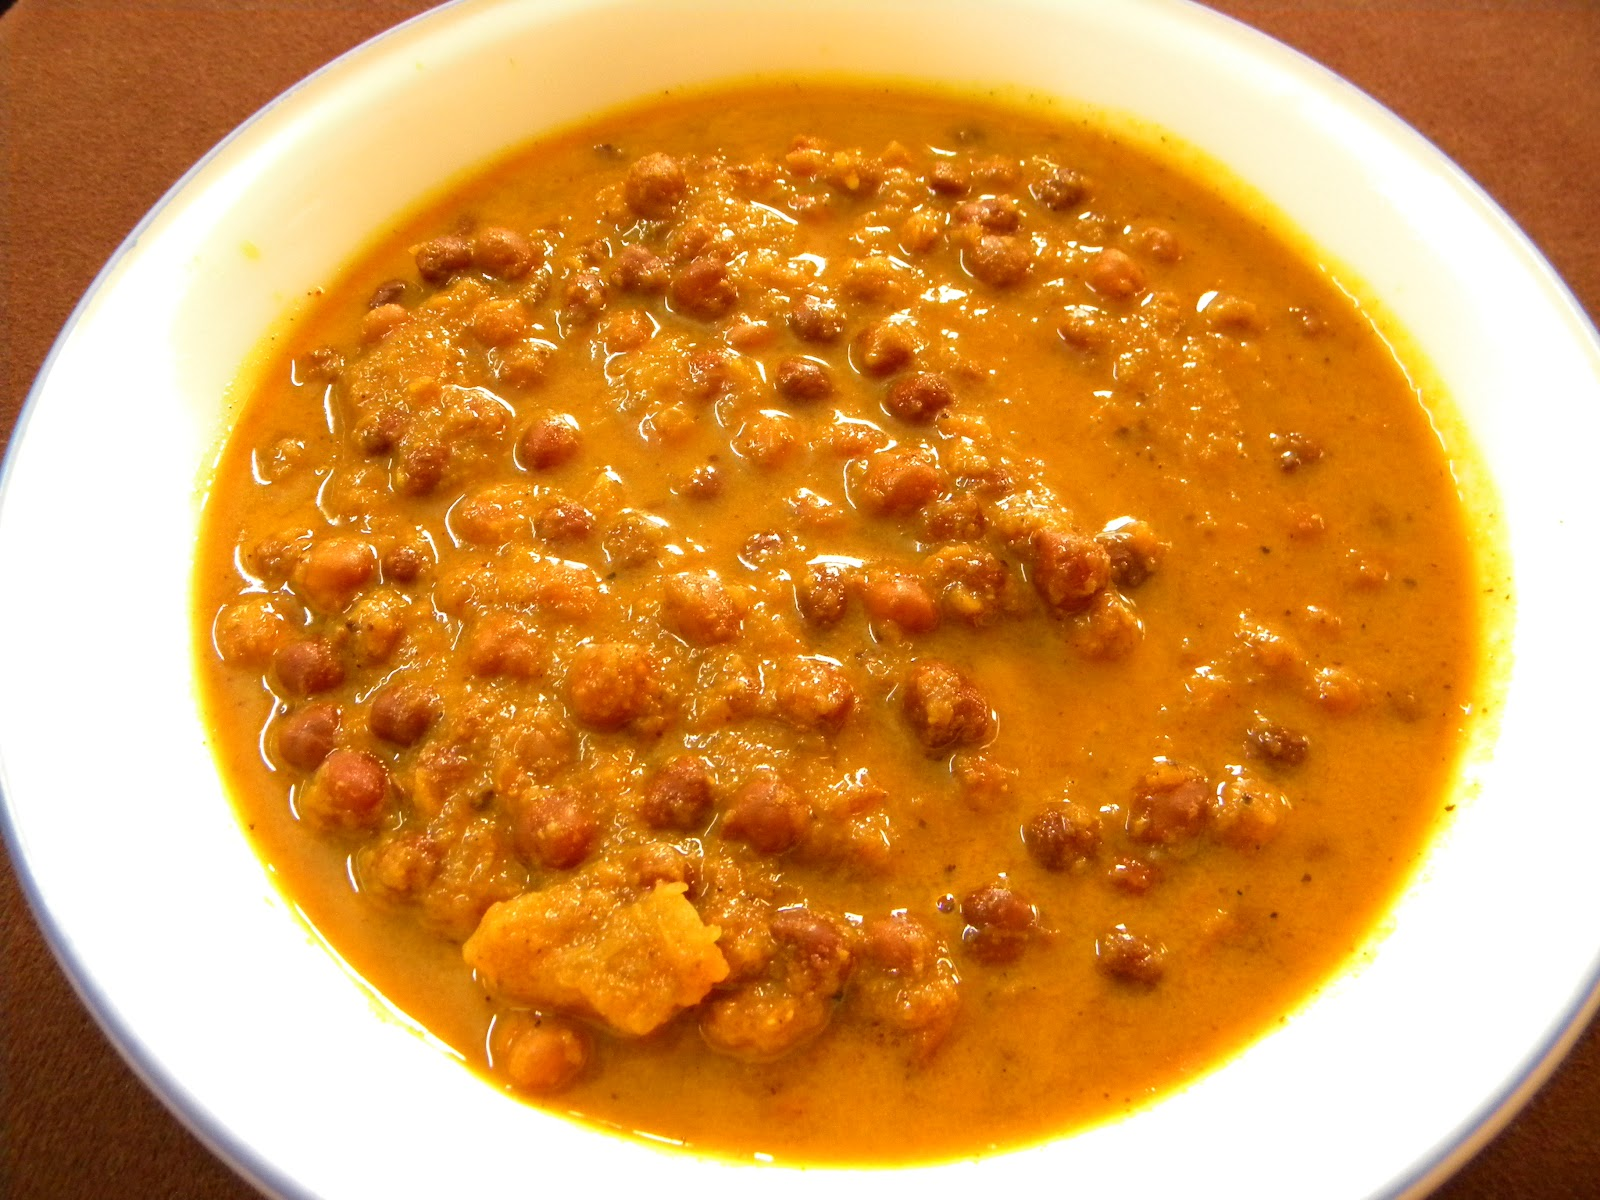 Fast Indian Recipes: Kala Chana Masala (Black Chickpeas Curry)